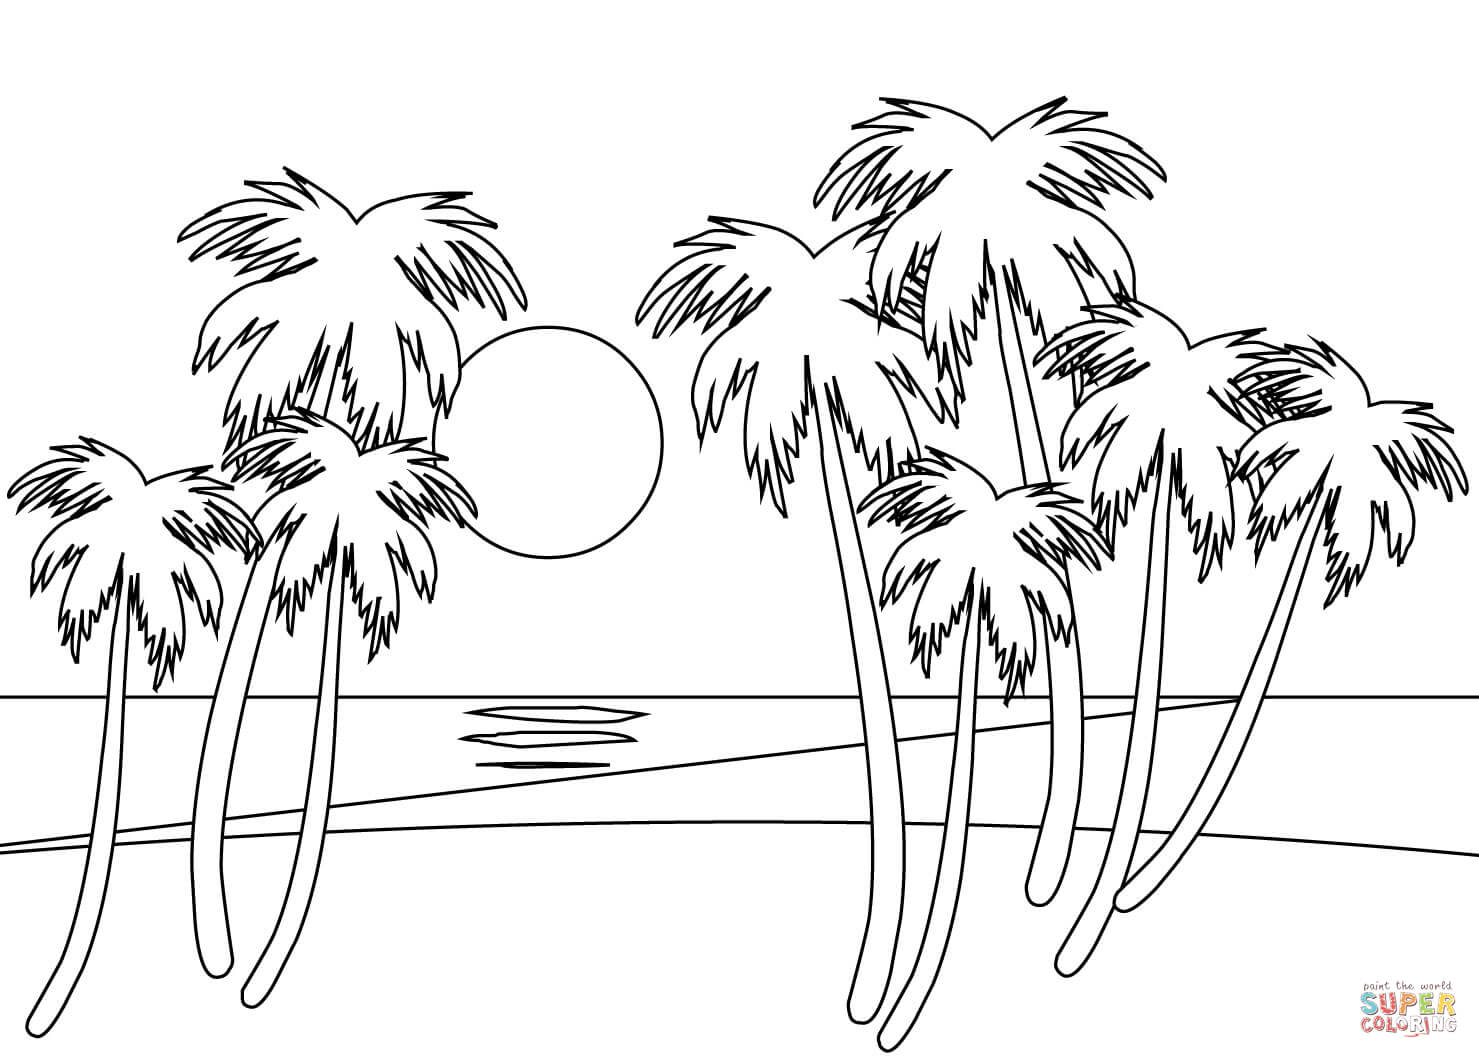 coloring beach scene beach coloring pages beach scenes activities coloring beach scene 1 1